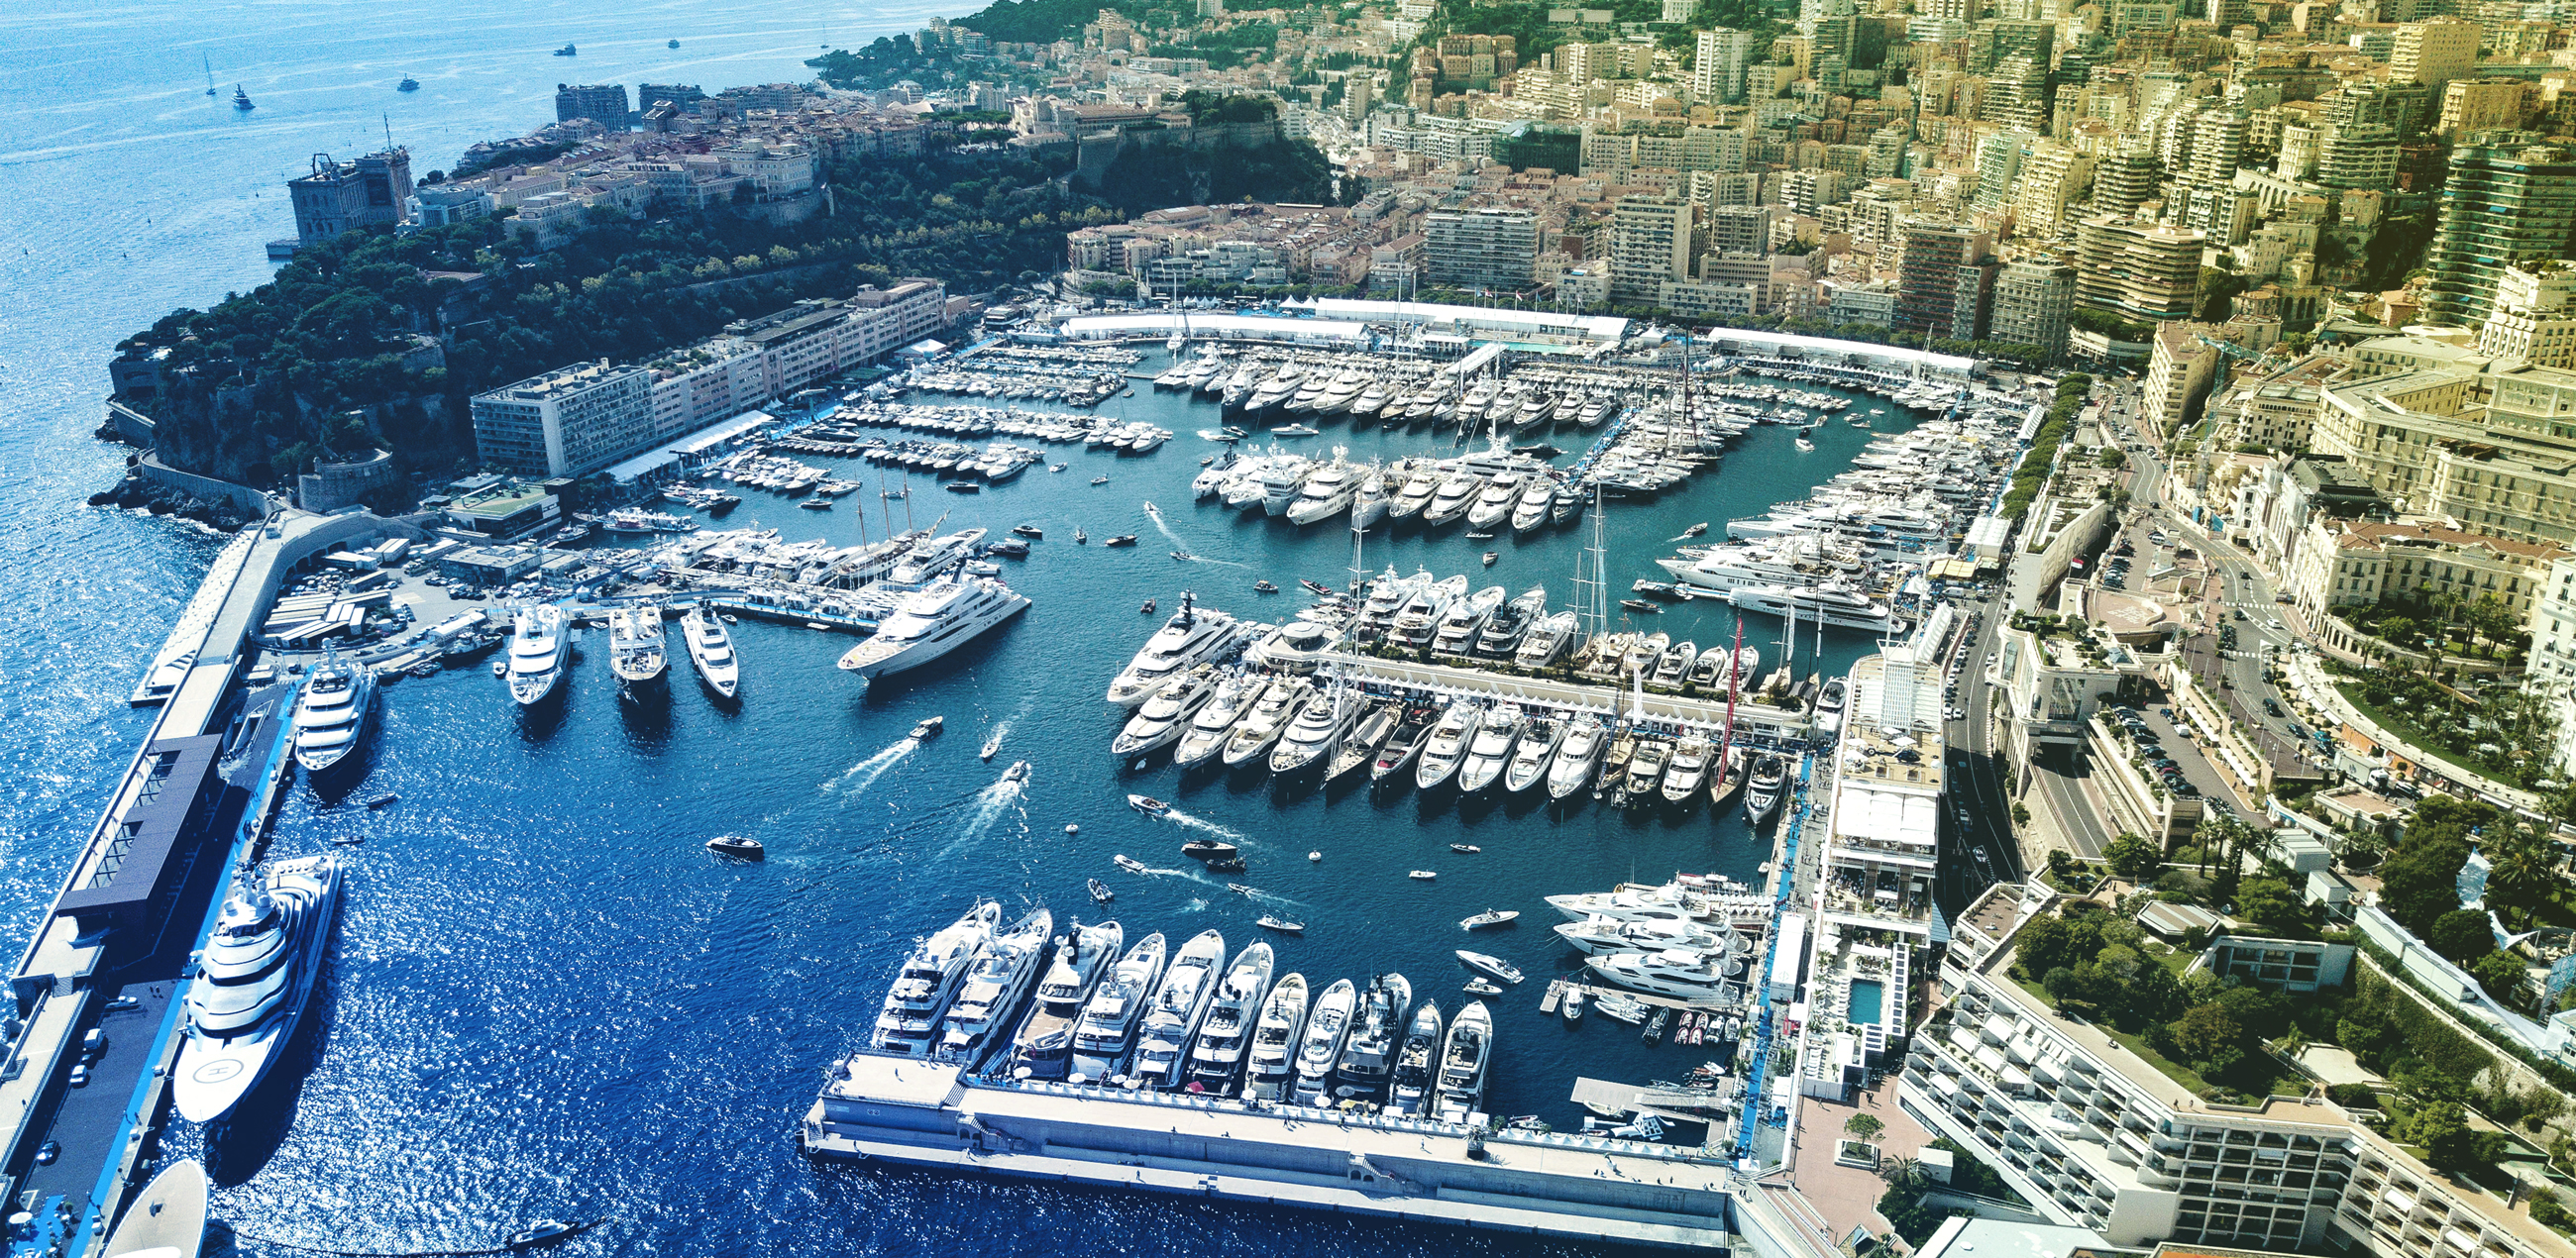 CHD edition at the Monaco Yacht Show 2018